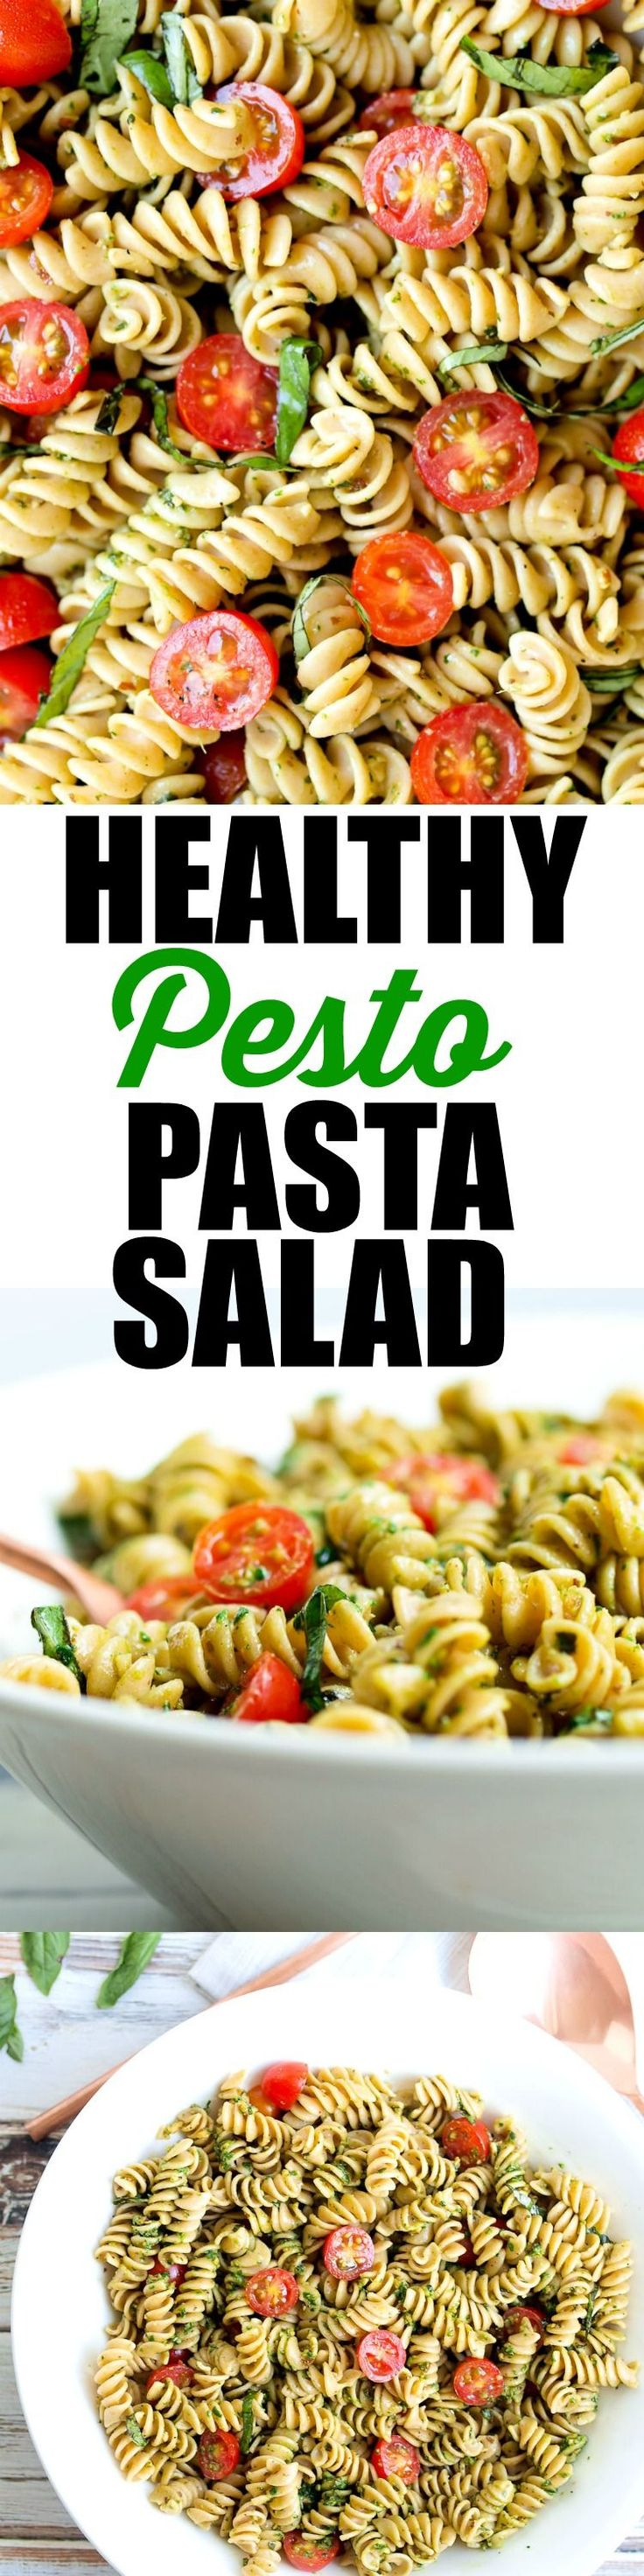 SUPER EASY Pesto Pasta Salad recipe. Yes, pasta salad can be healthy! Just over…